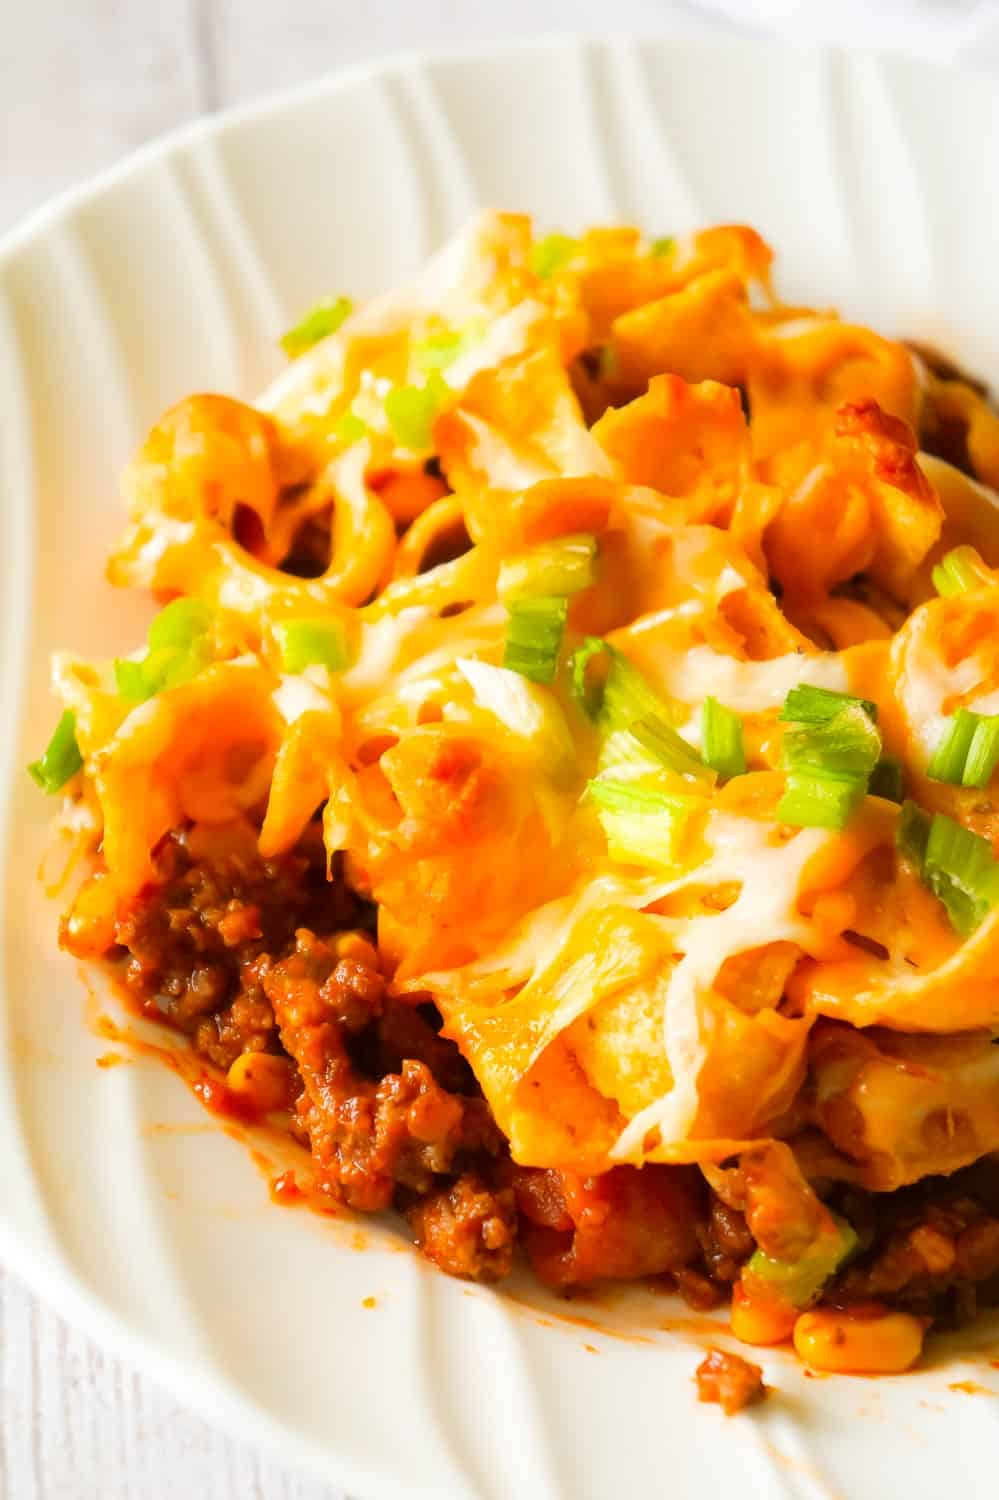 Frito Pie is an easy ground beef dinner recipe the whole family will love. This ground beef casserole starts with a chili base and is topped with Frito's corn chips, shredded cheese and green onions.